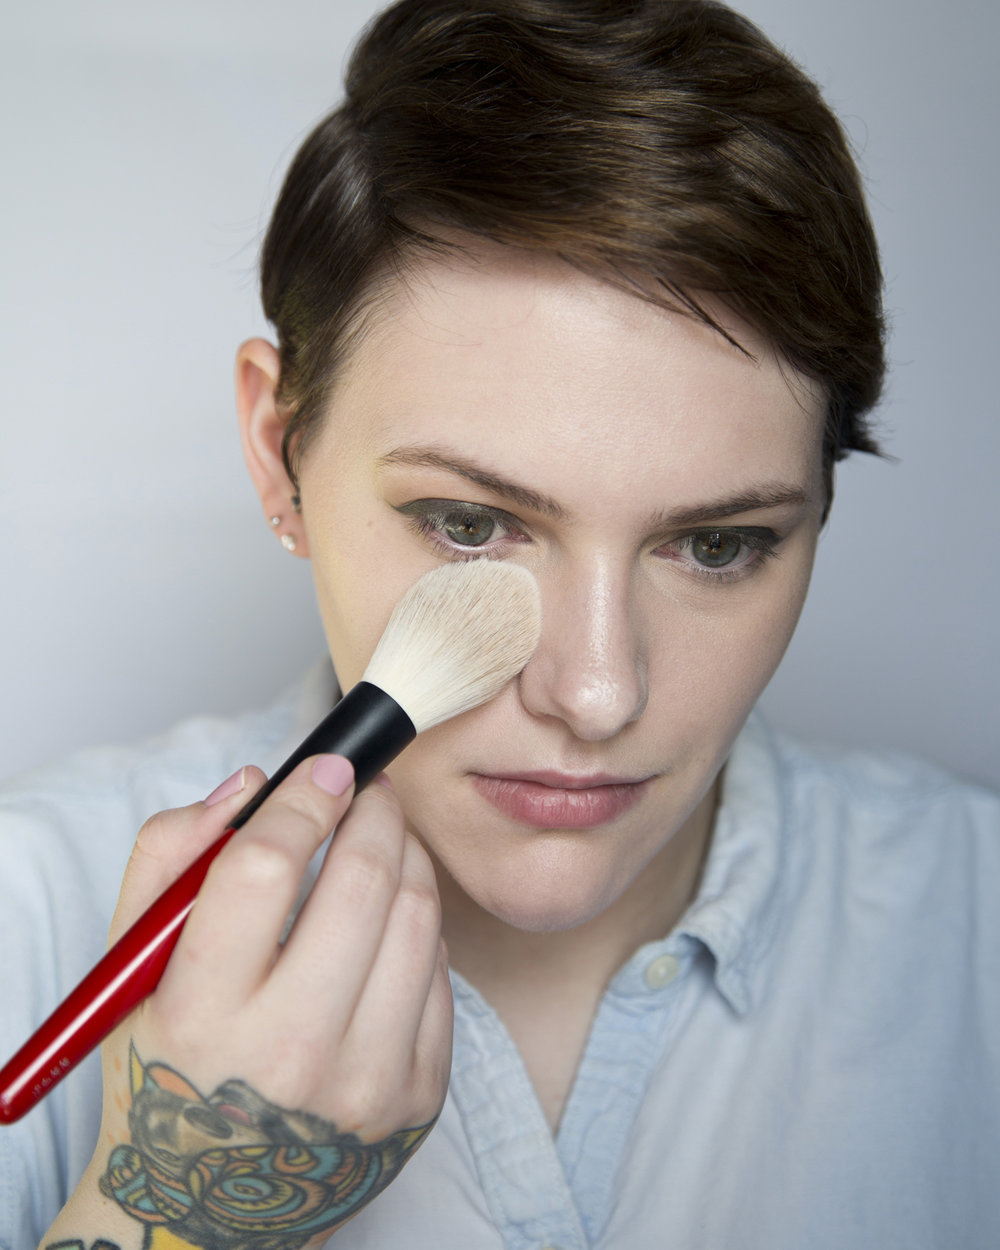 So back to powder. Here I am applying some of the Laura Mercier pressed powder with my hakuho-do x Sephora Pro brush under my eyes to set that concealer. Keeping it real here; I hate this powder ( love  the brush though). I'm waiting for the April Sephora sale so I can replace it but this is such a bad powder for dry skin and can look really dry and cakey so this is the one product from today that I would not recommend but I don't want to completely waste it so I force myself to use it every now and then.